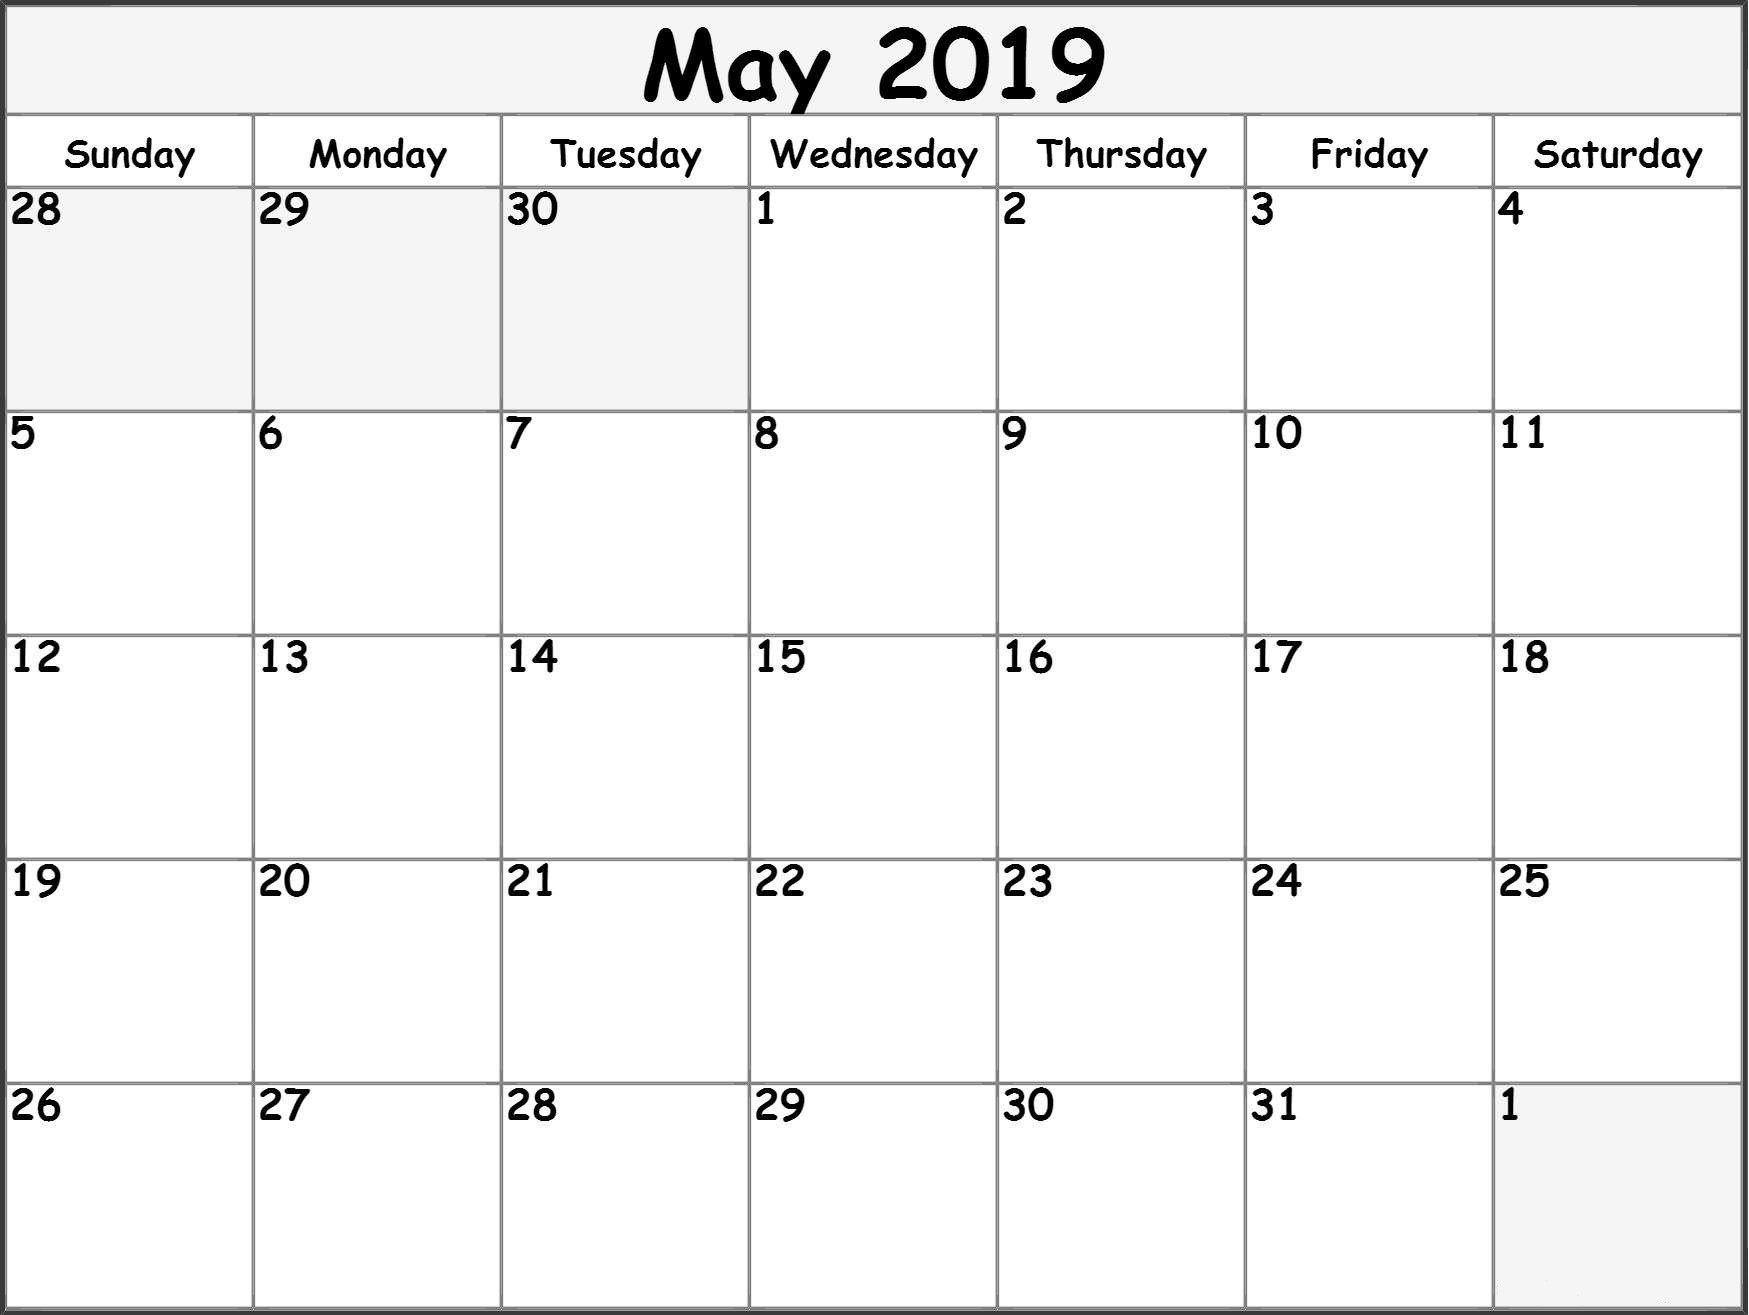 007 May Calendar Printable Template Ideas Free Shocking Blank within Large Printable Calendar 2020